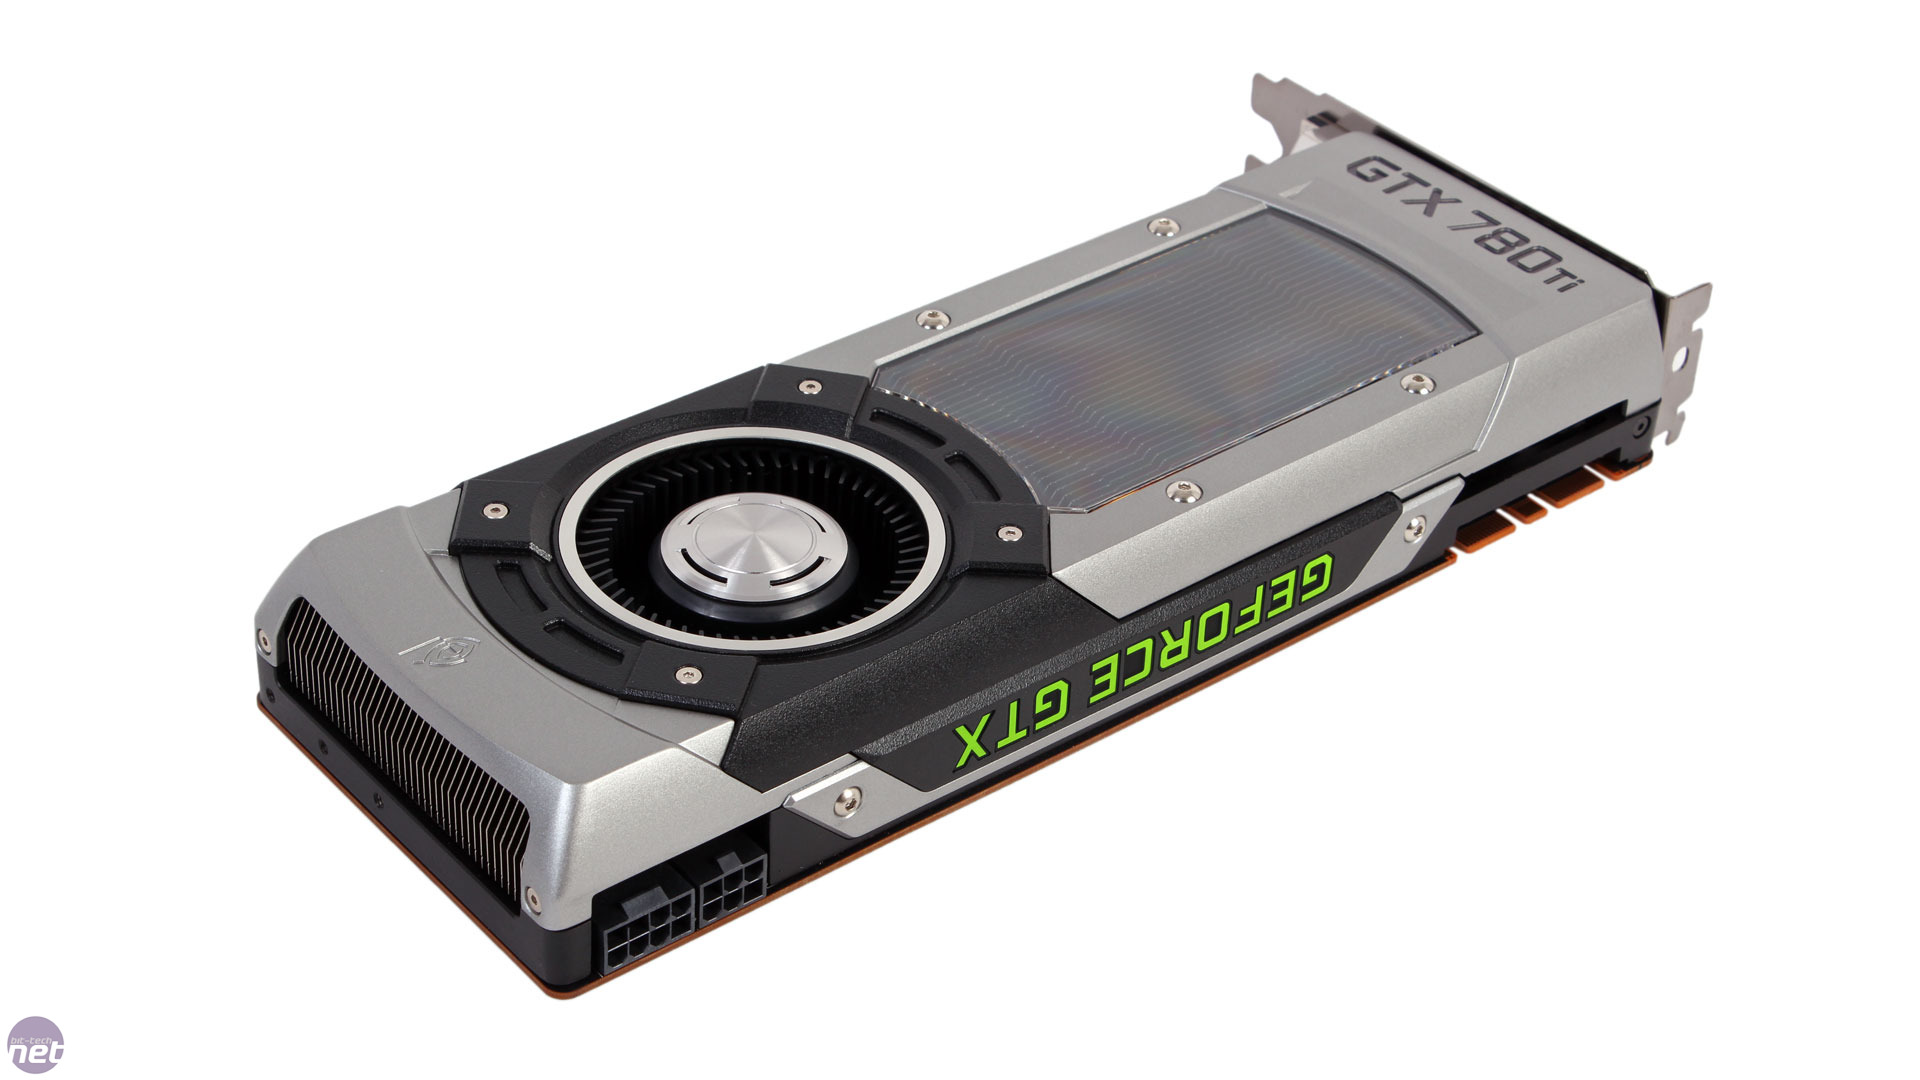 Geforce gtx 780 deals